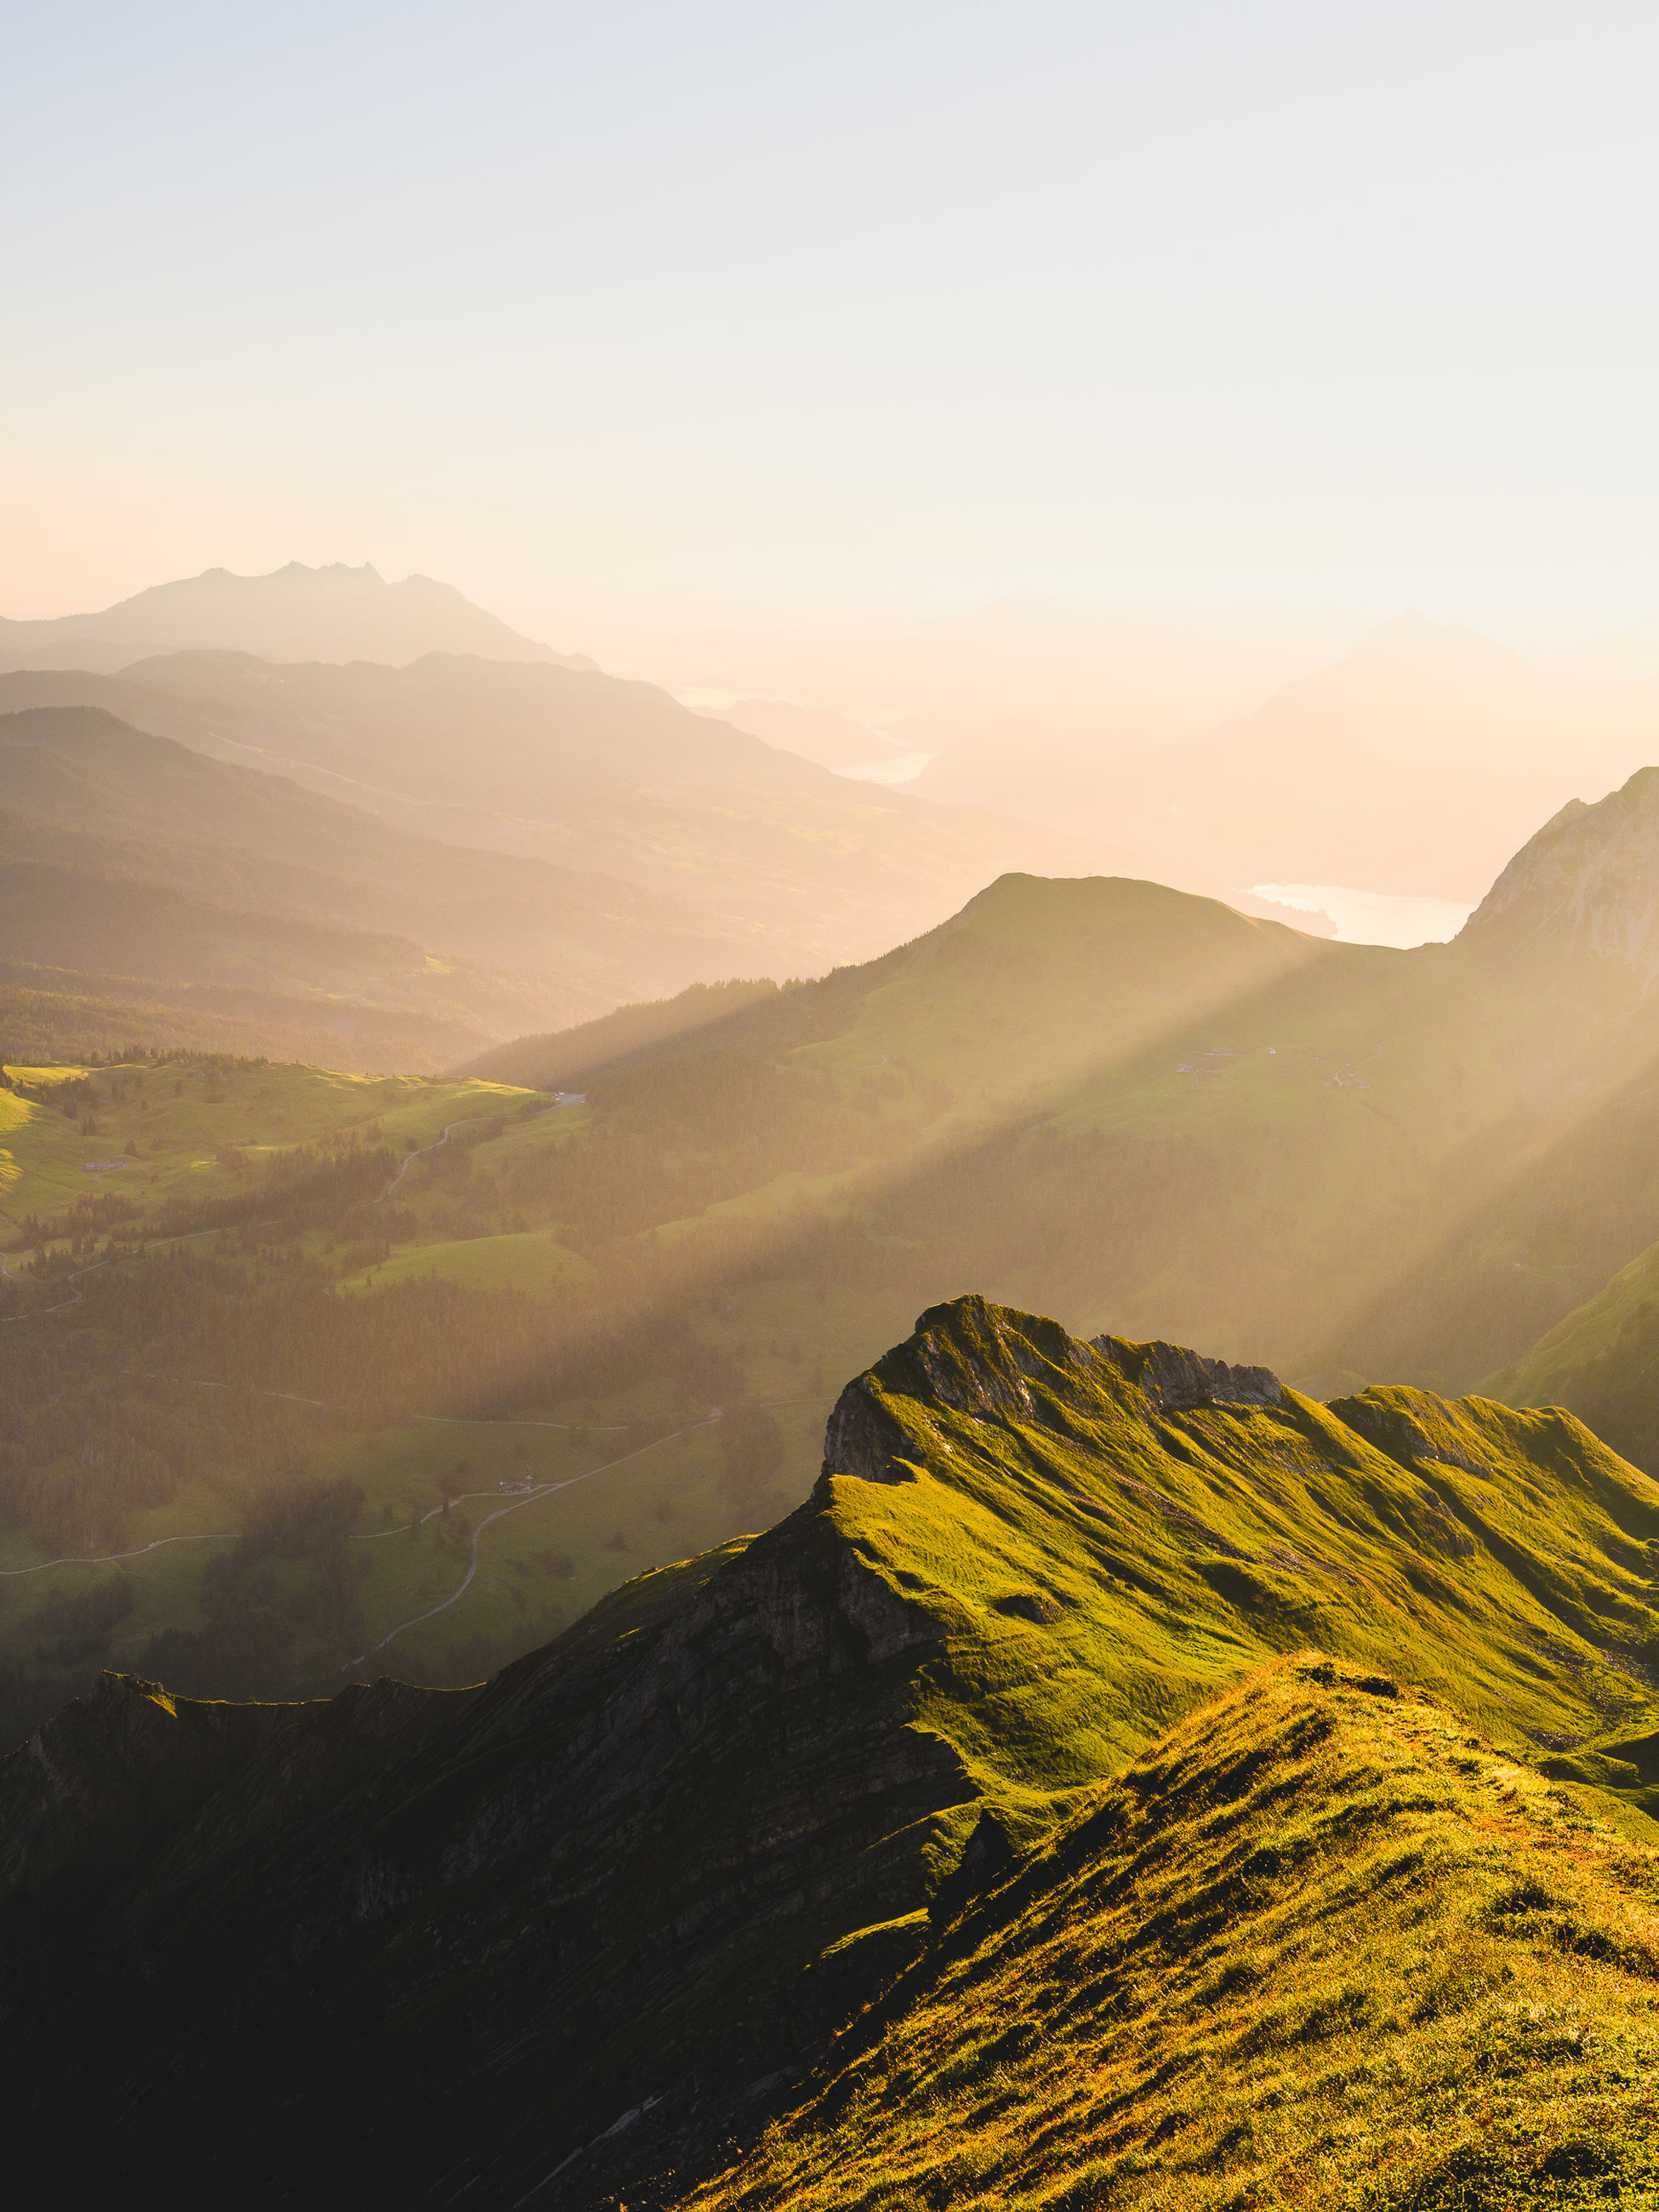 mountain, beauty in nature, scenics - nature, tranquil scene, tranquility, environment, sky, non-urban scene, mountain range, landscape, idyllic, nature, no people, fog, sunset, remote, outdoors, sunlight, day, mountain peak